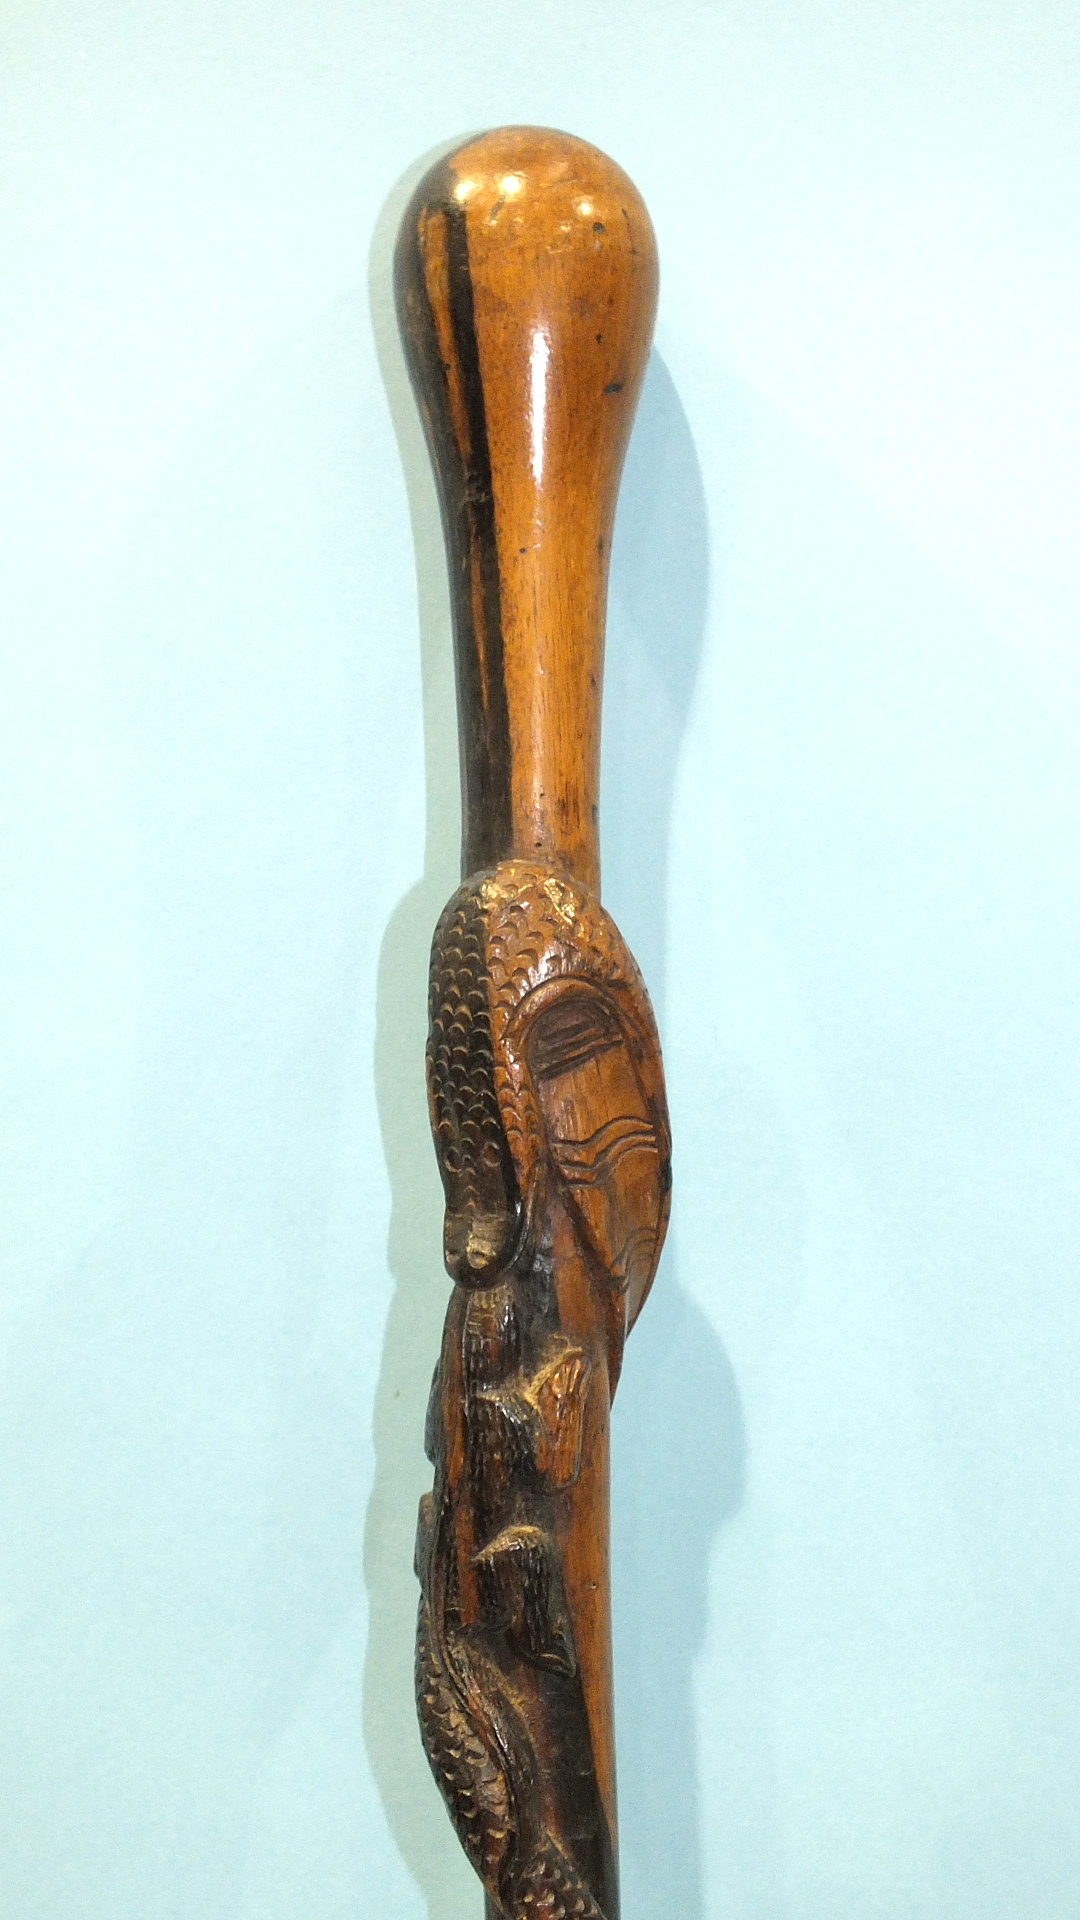 Lot 240 - An African hardwood walking stick carved with a snake and a salamander, 93cm long.